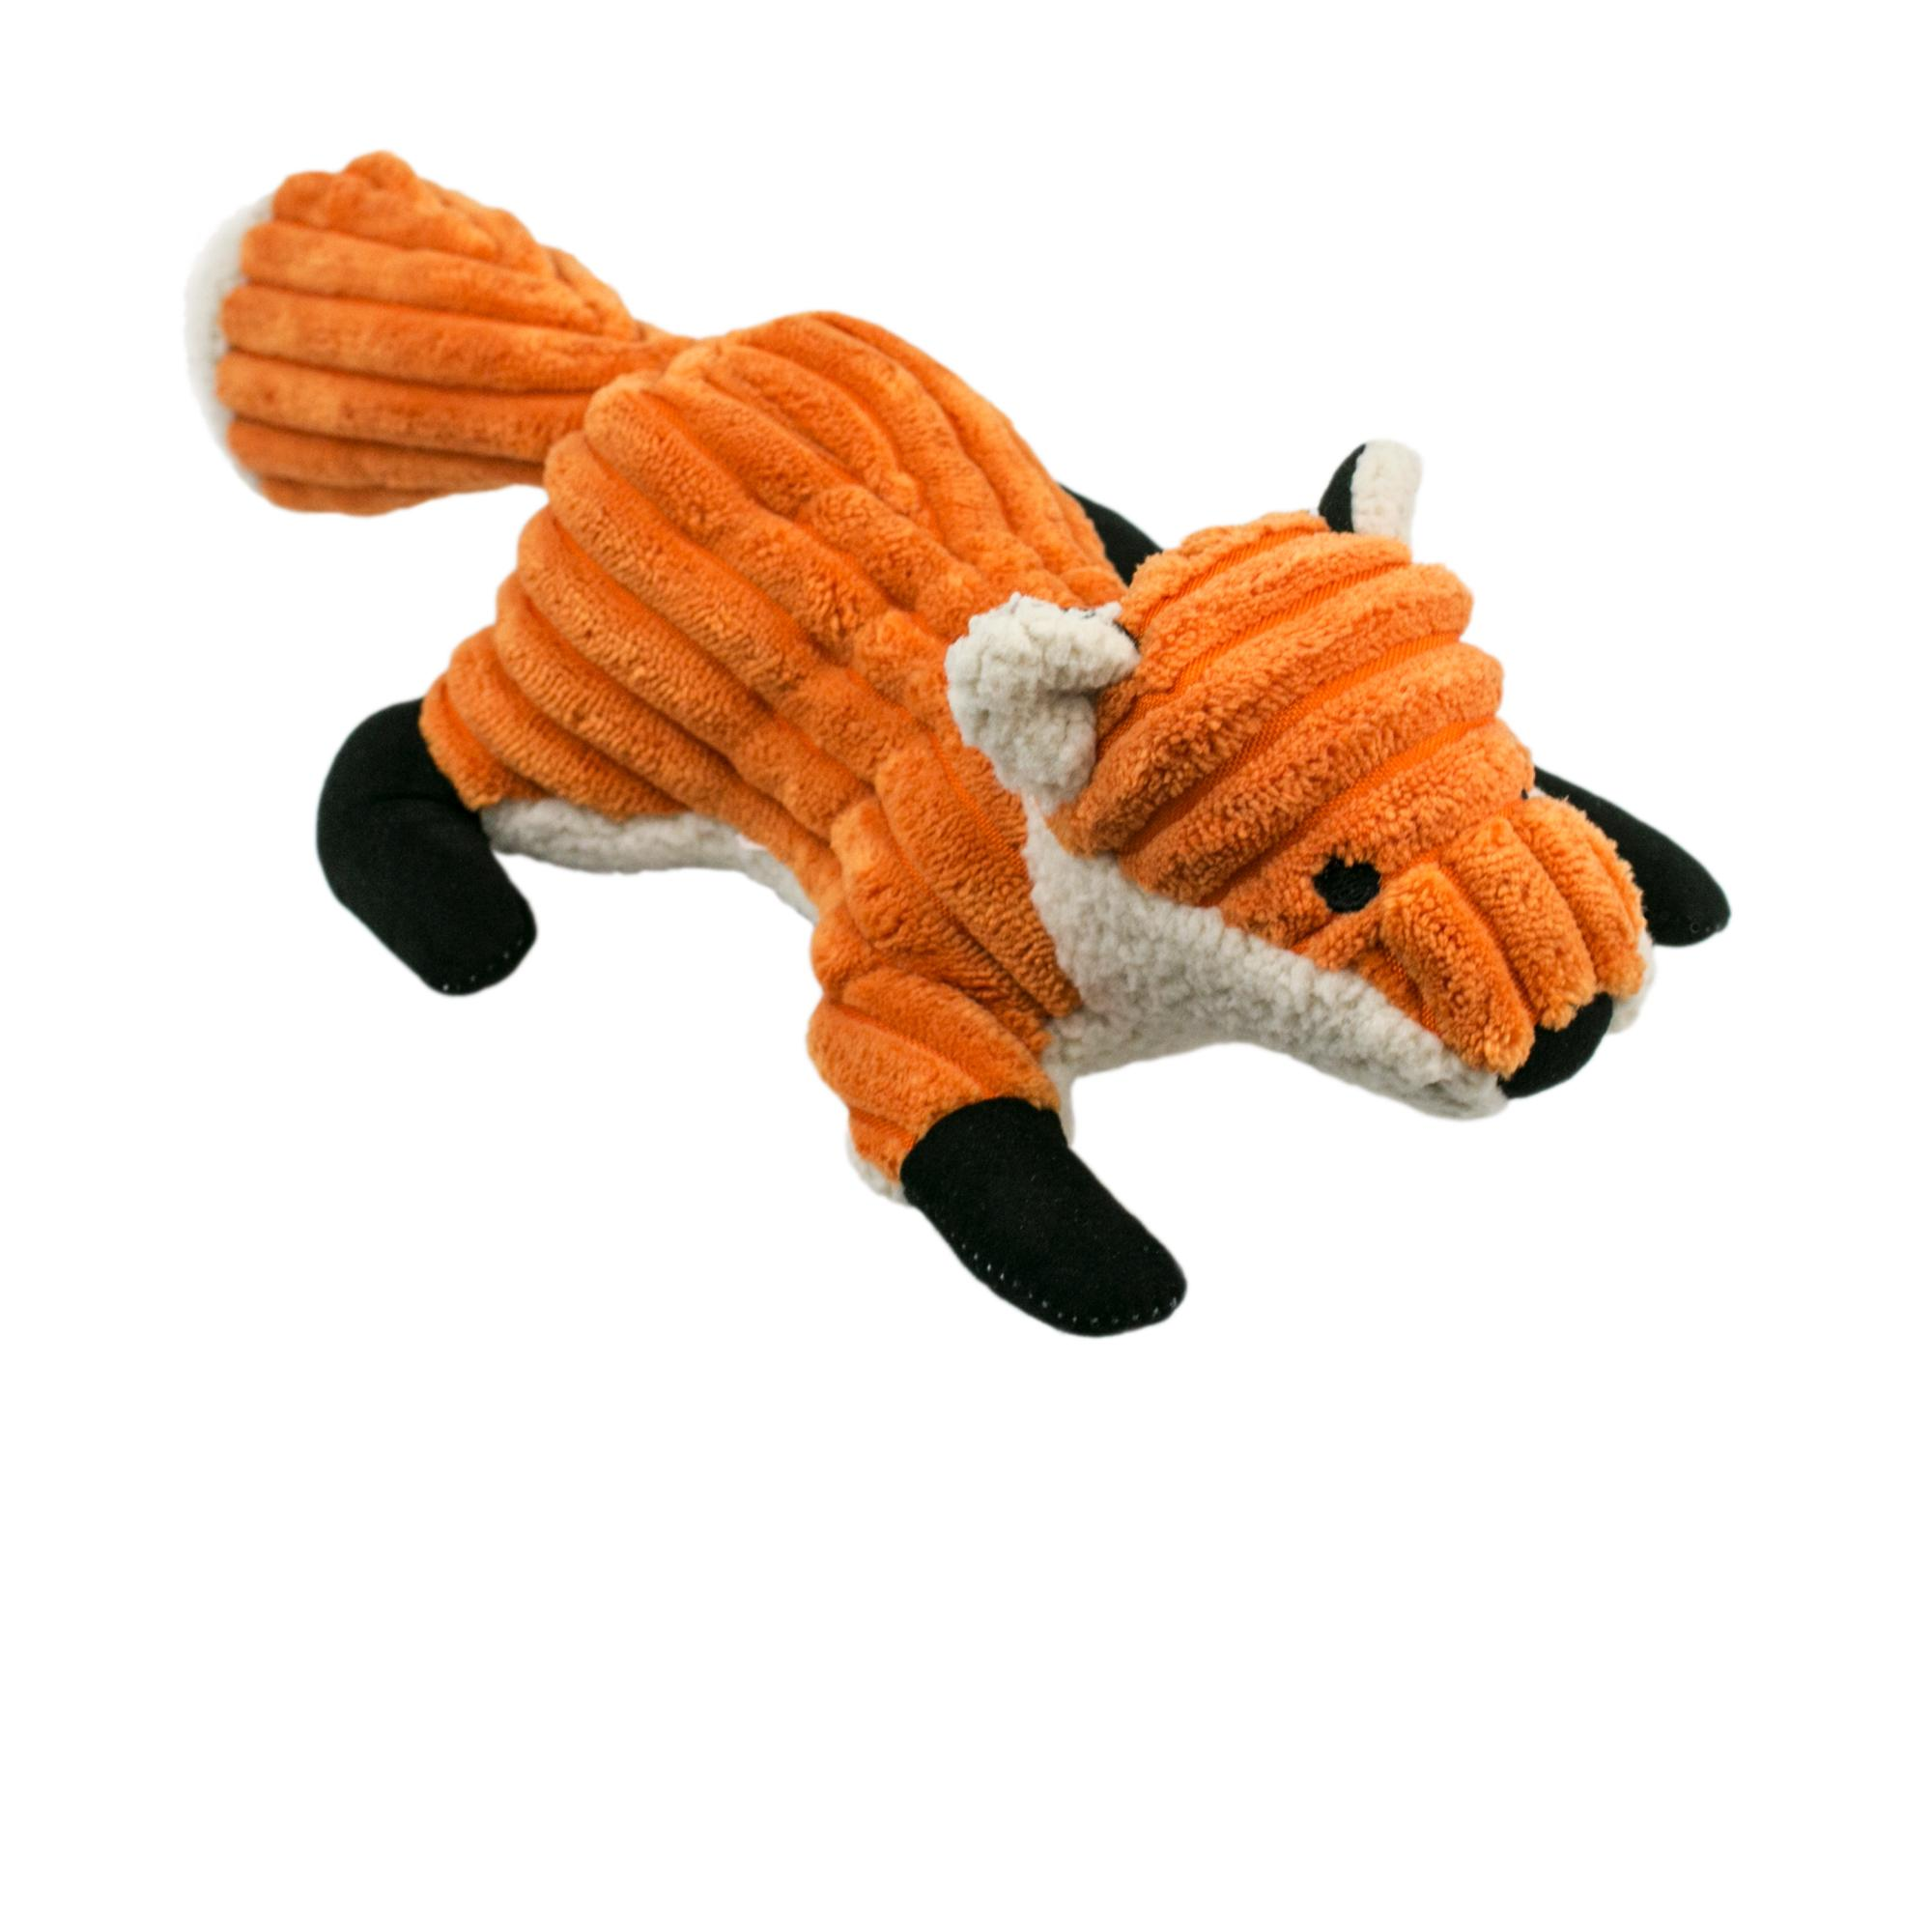 Tall Tails Fox Squeaker Dog Toy, 12-in (Size: 12-in) Image